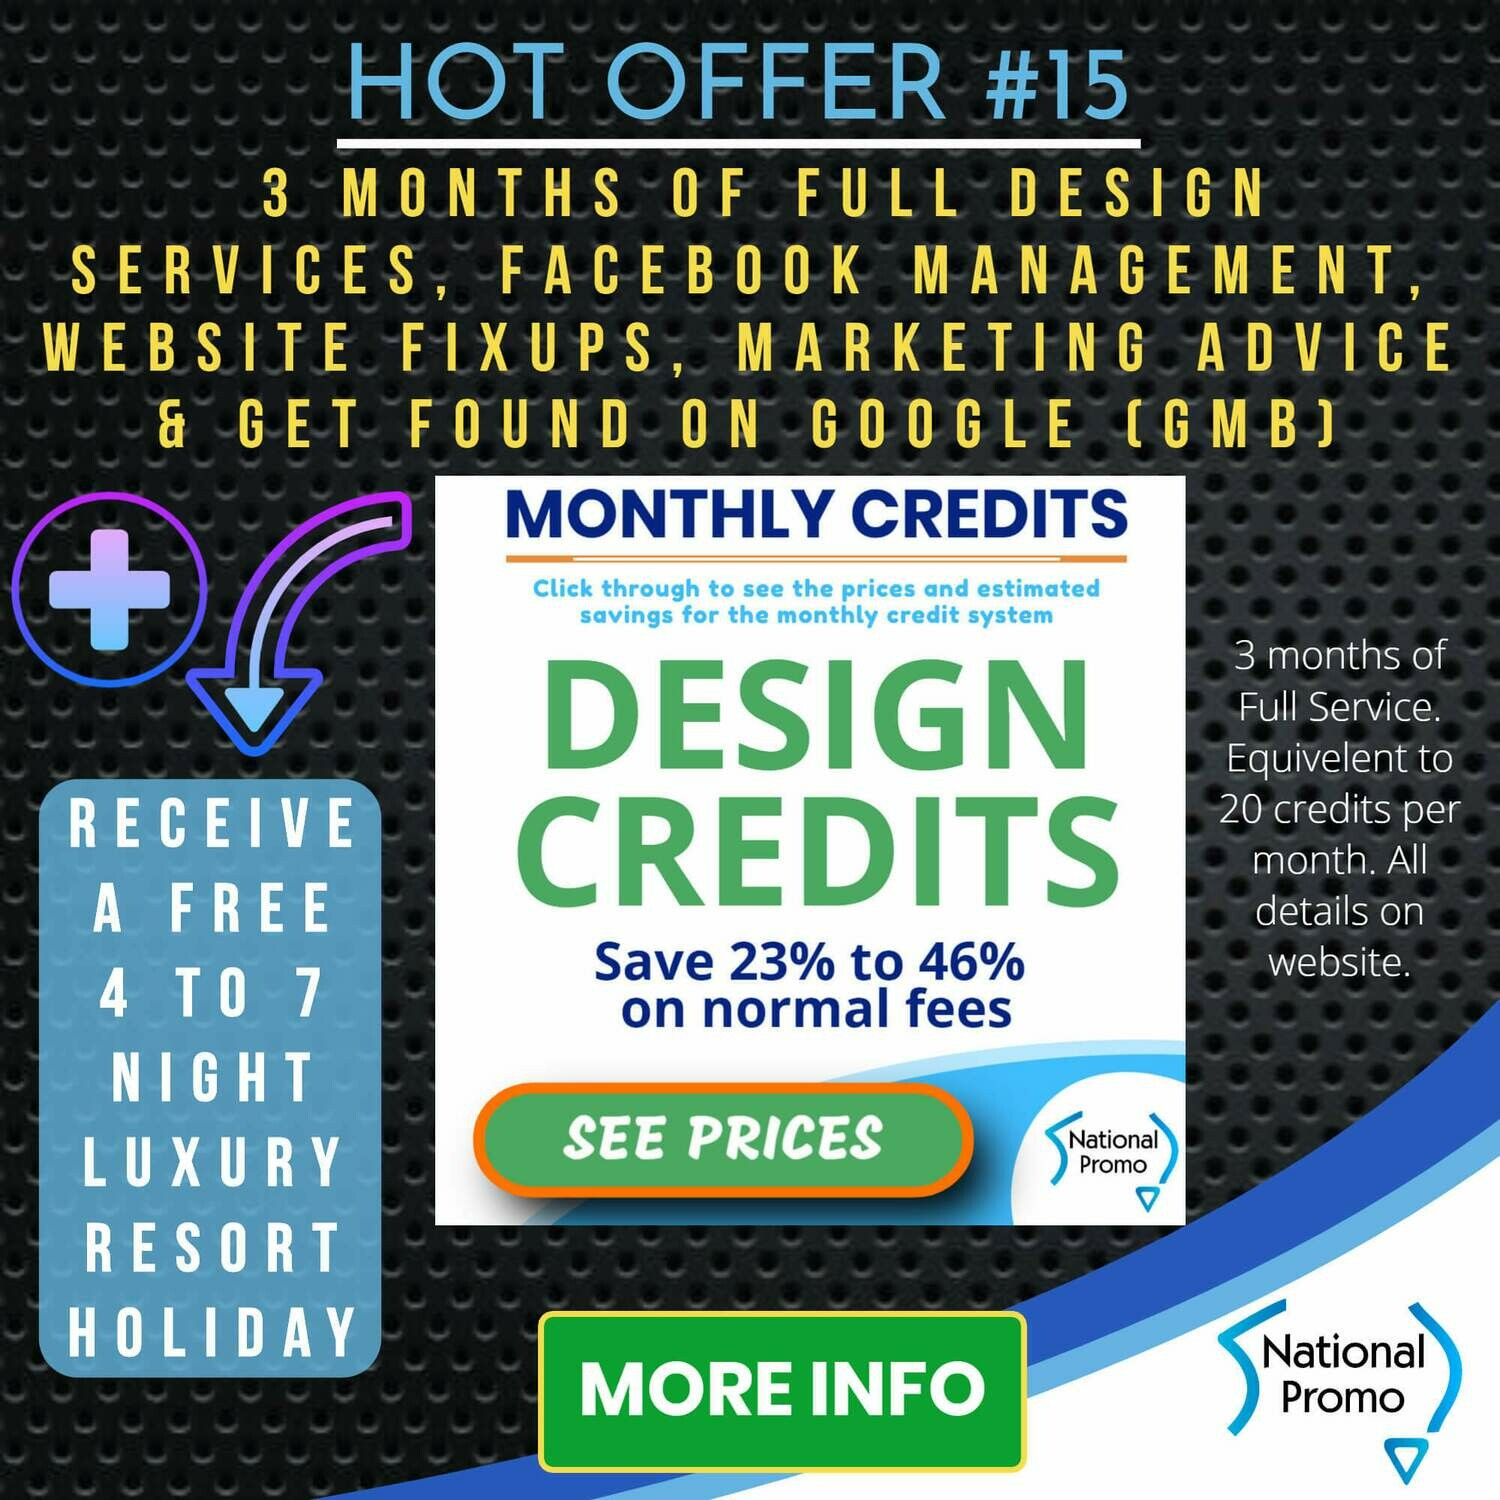 3 MONTHS OF DESIGN & WEBSITE SERVICES + get a FREE HOLIDAY